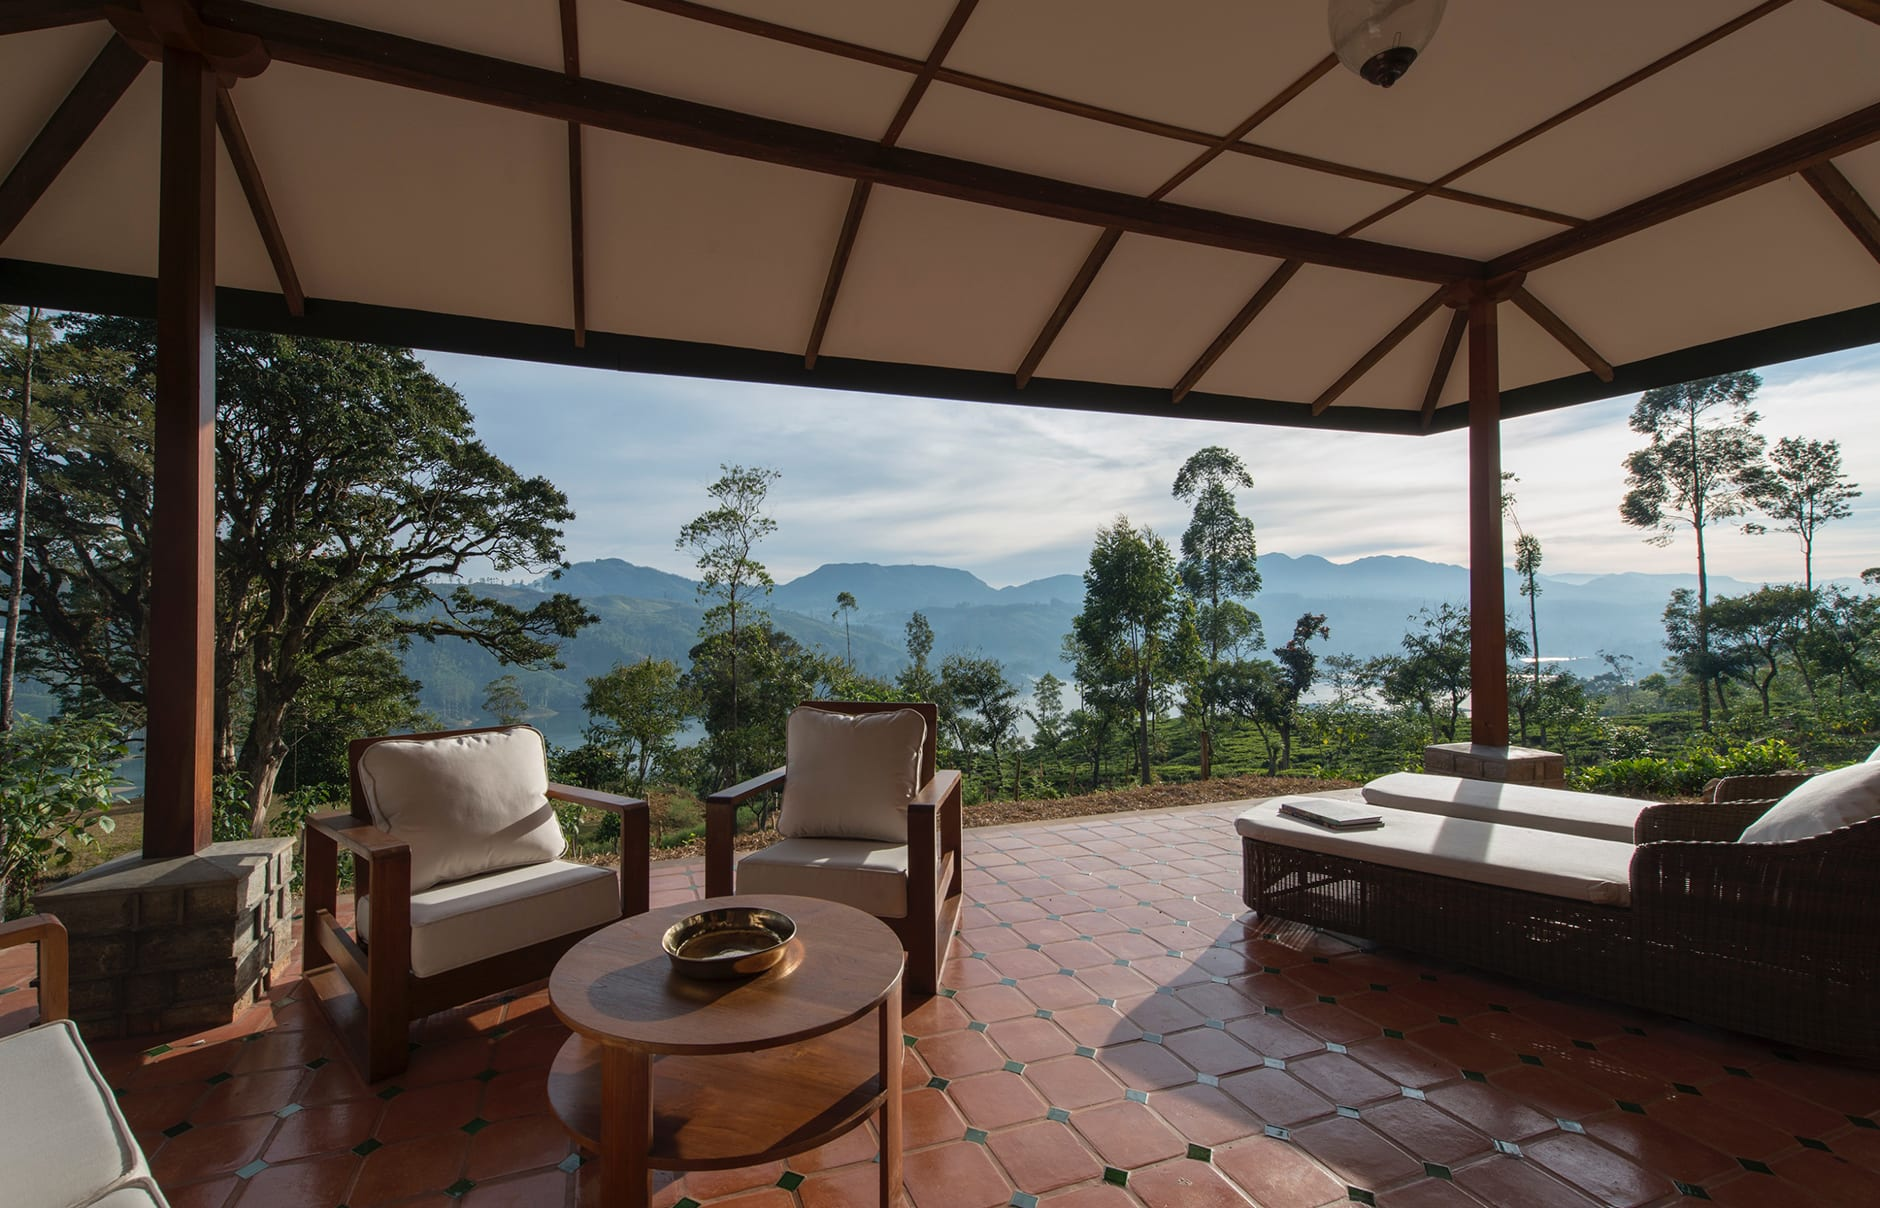 The Owner's Cottage at Dunkeld Bungalow. Ceylon Tea Trails, Sri Lanka. Hotel Review by TravelPlusStyle. Photo © Resplendent Ceylon